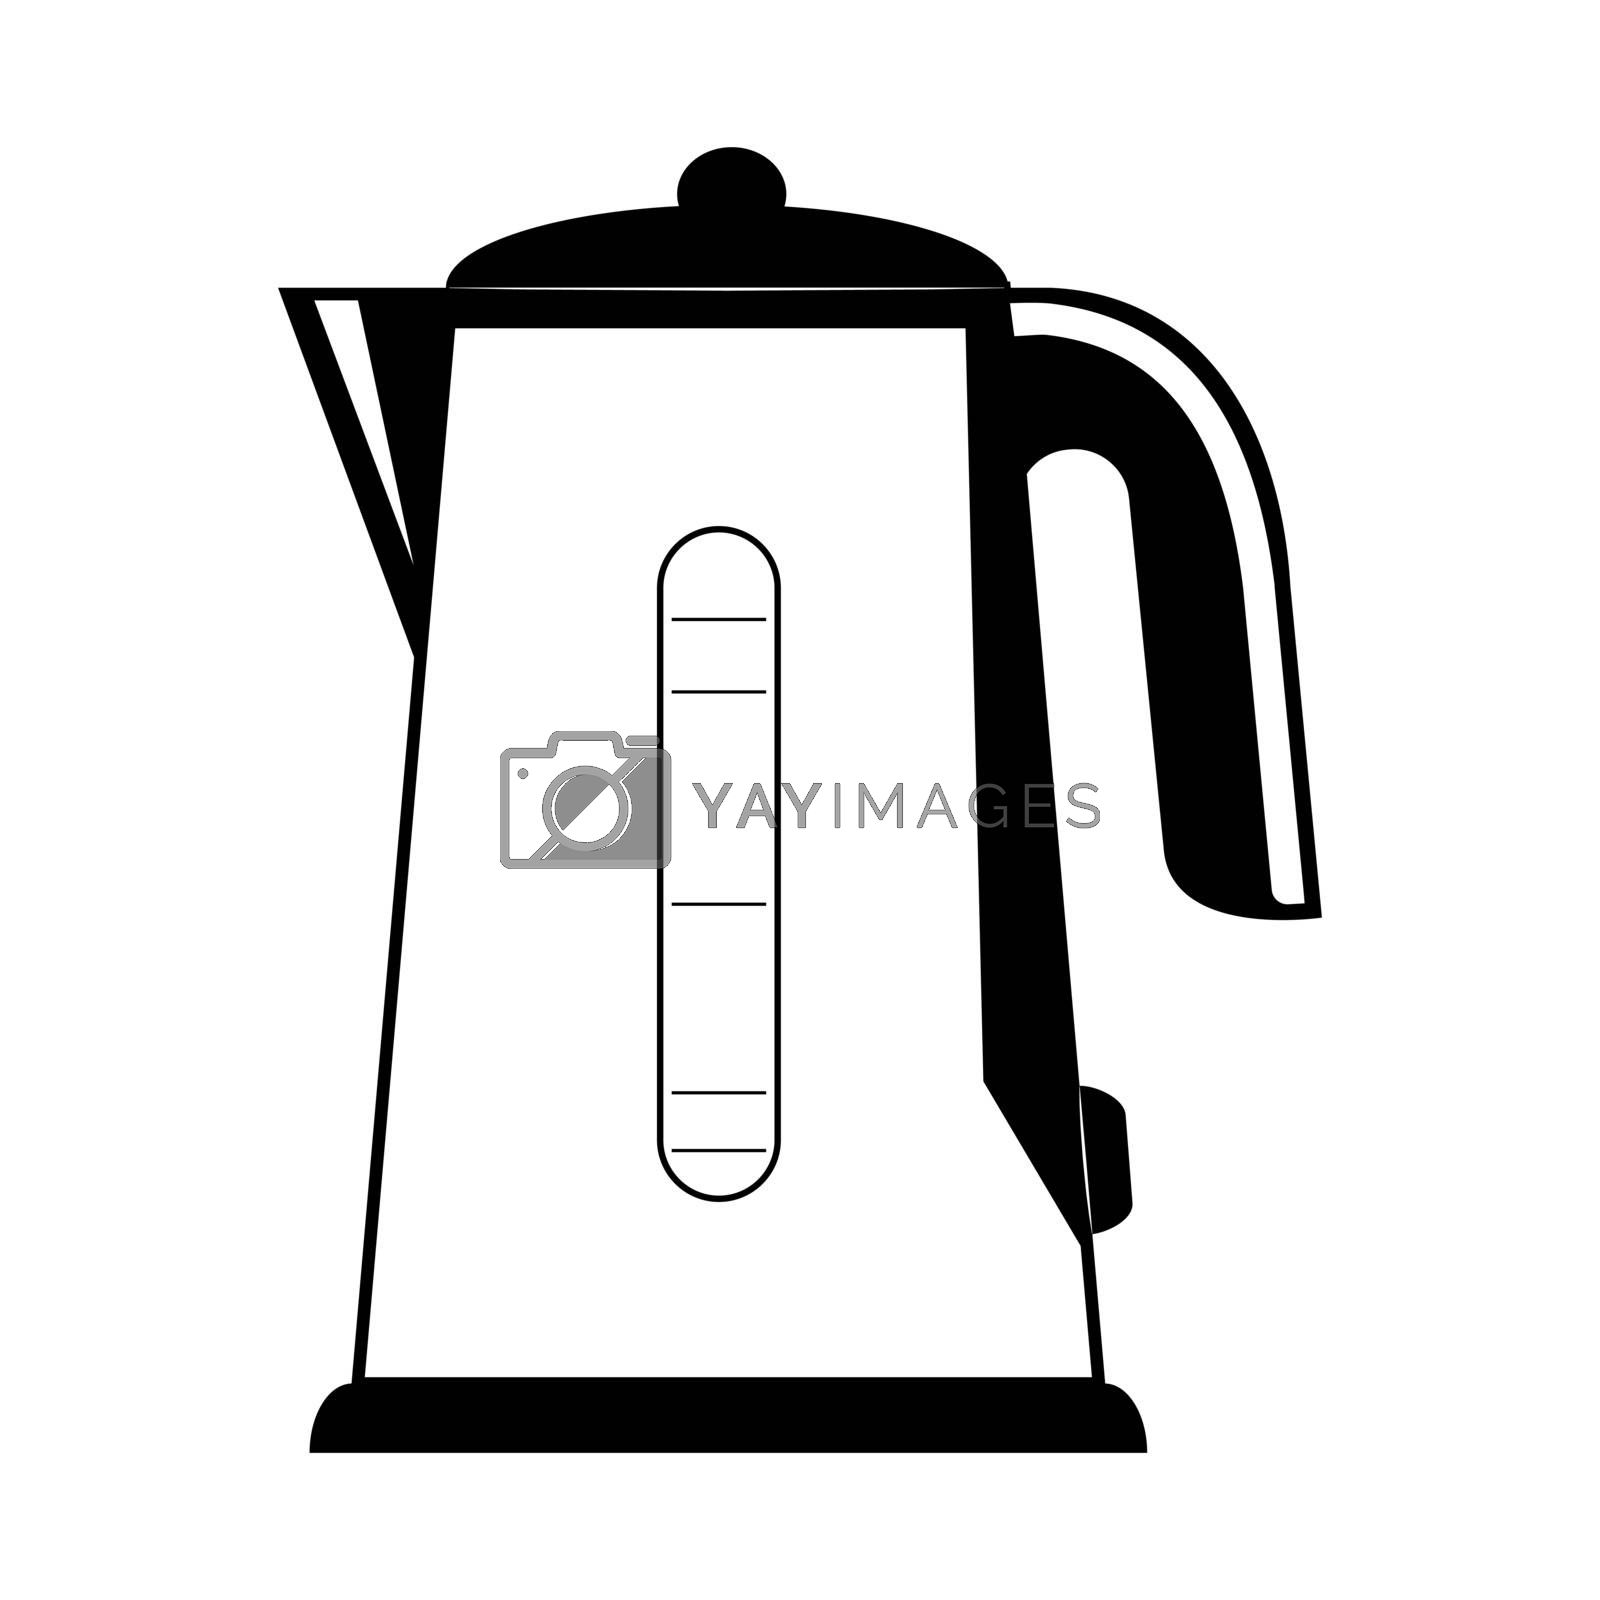 Home appliances, simple drawing of electric kettle for boiling water